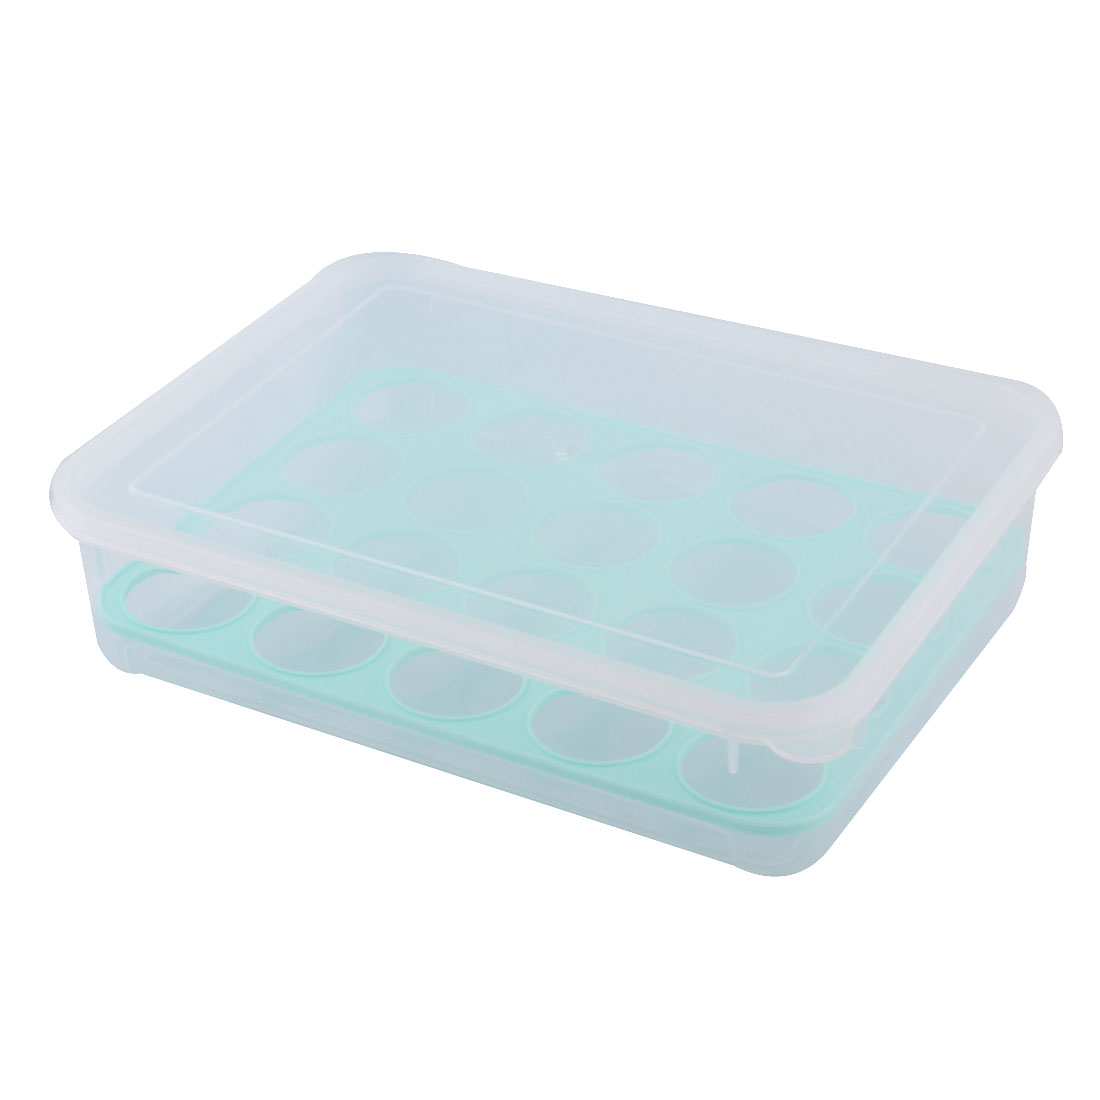 Home Kitchen Plastic 20 Eggs Container Holder Box Case Storage Clear